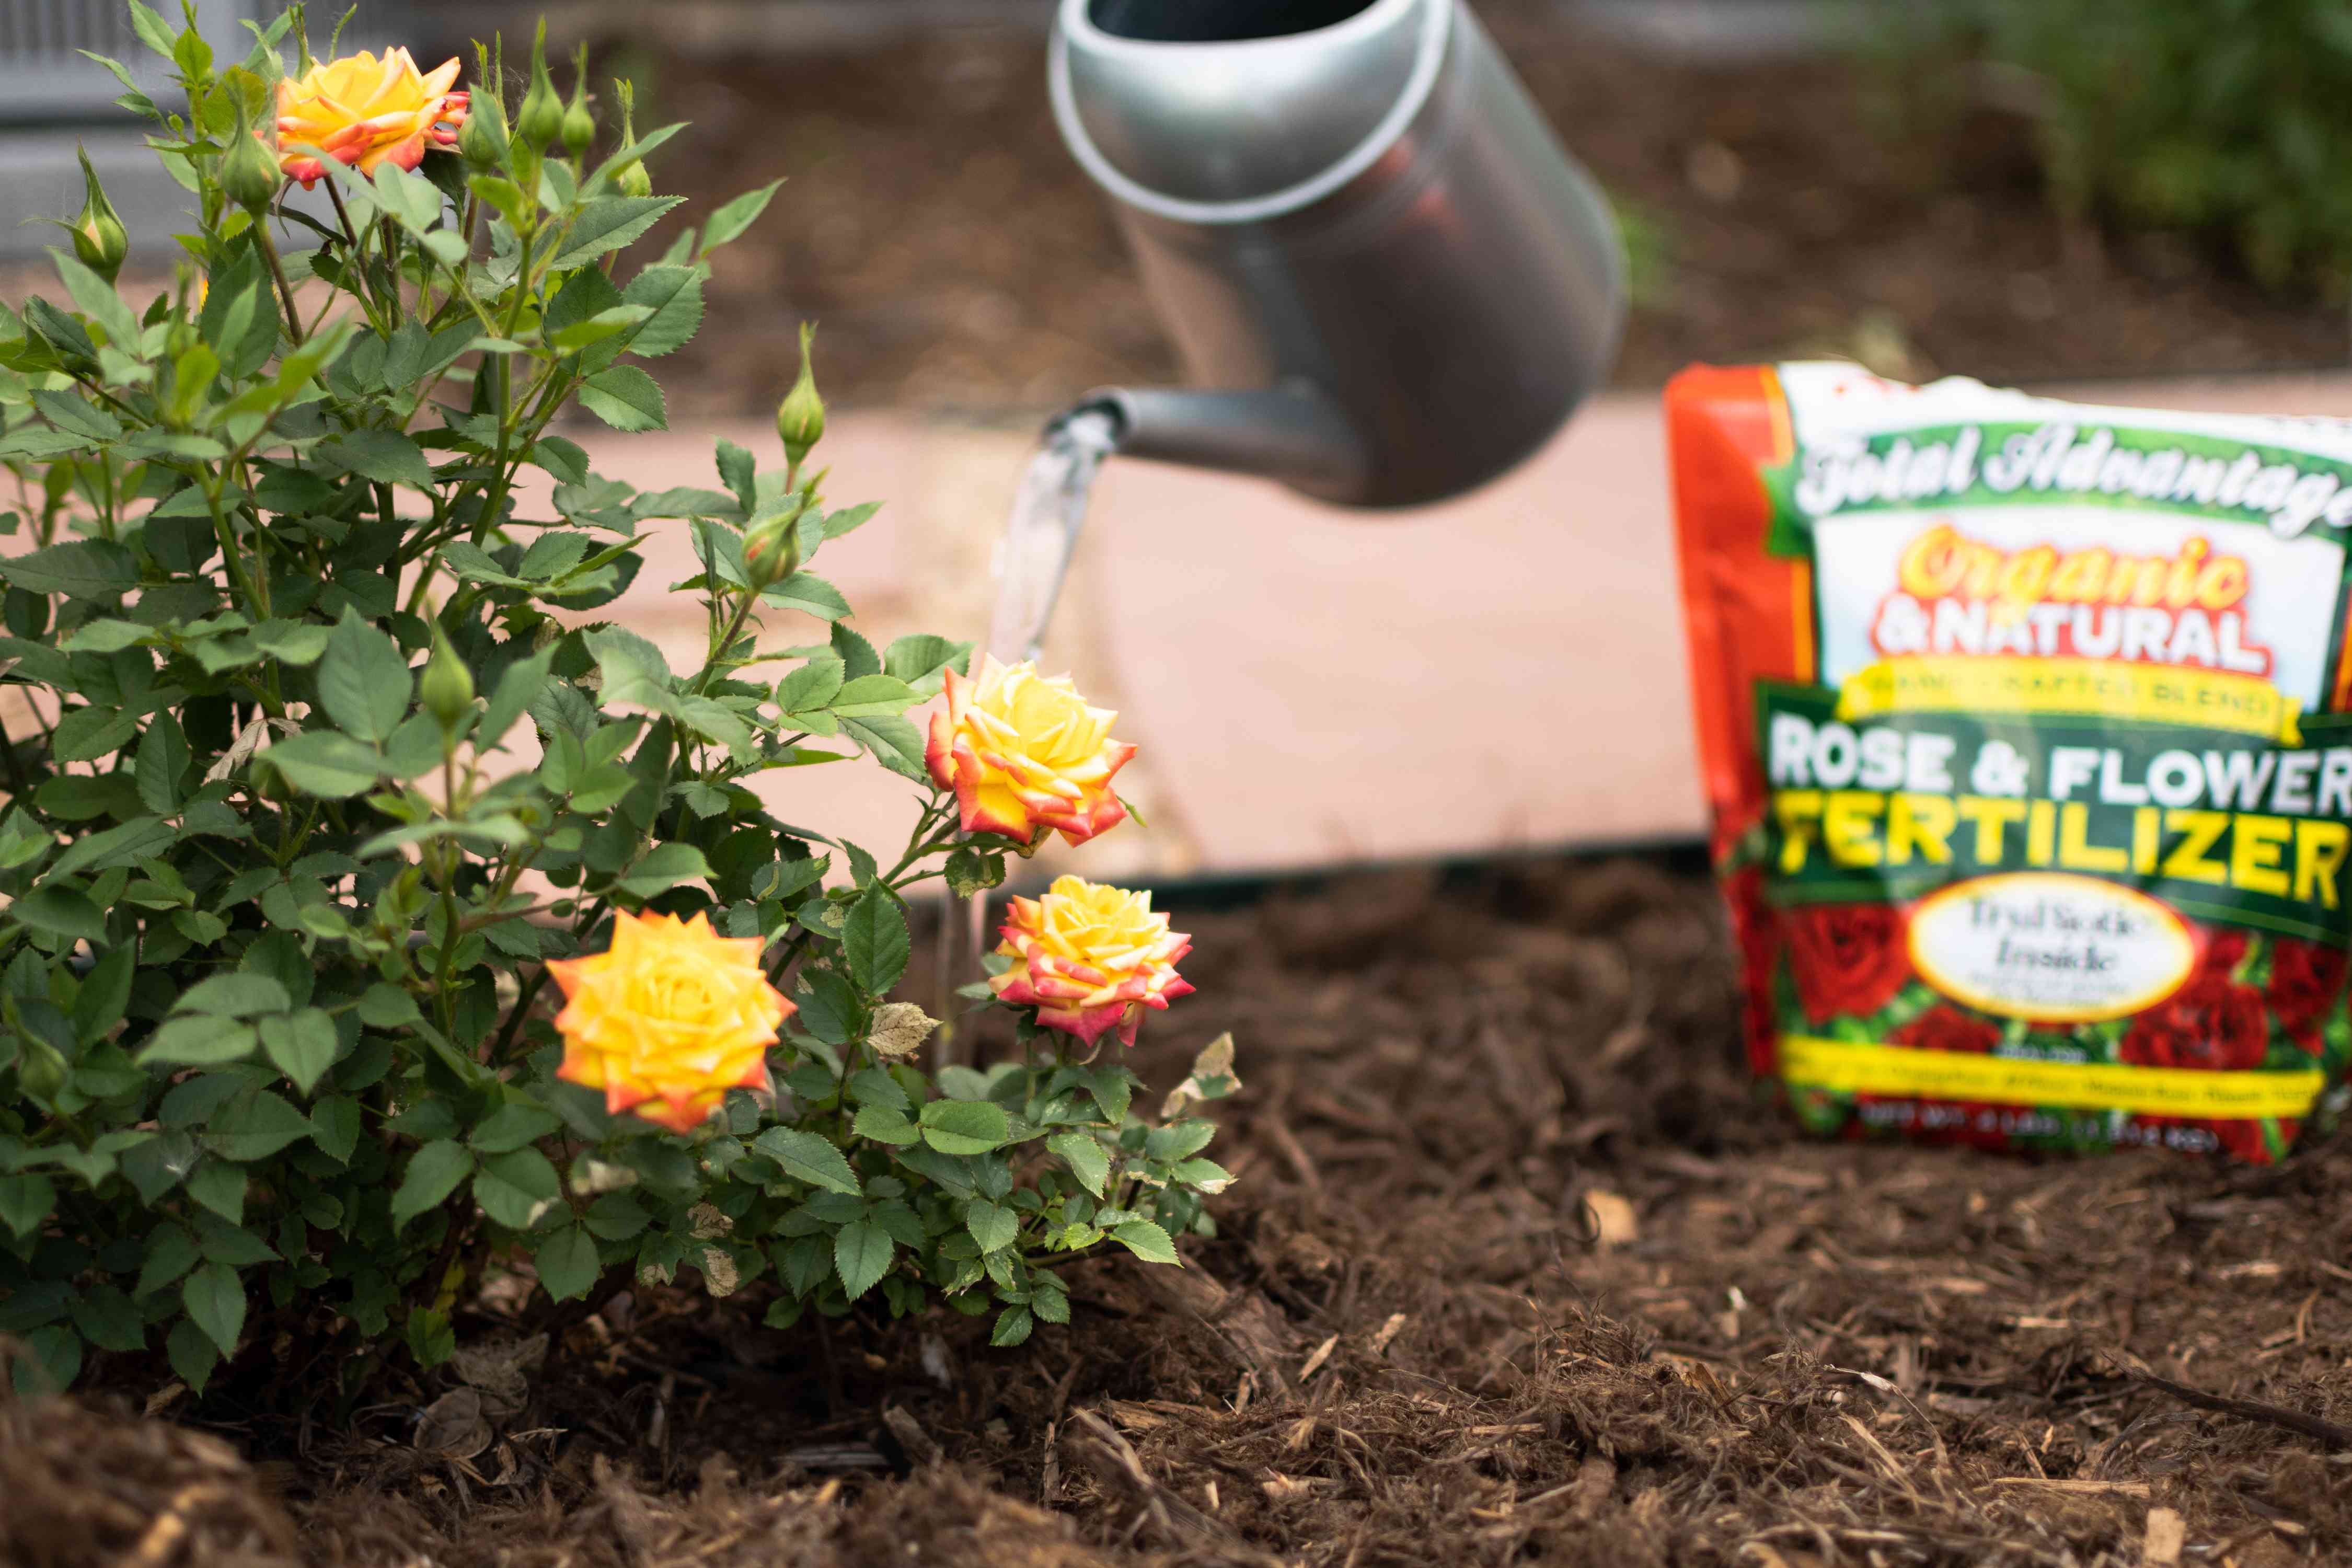 Watering can pouring water on rose bush next to flower fertilizer bag